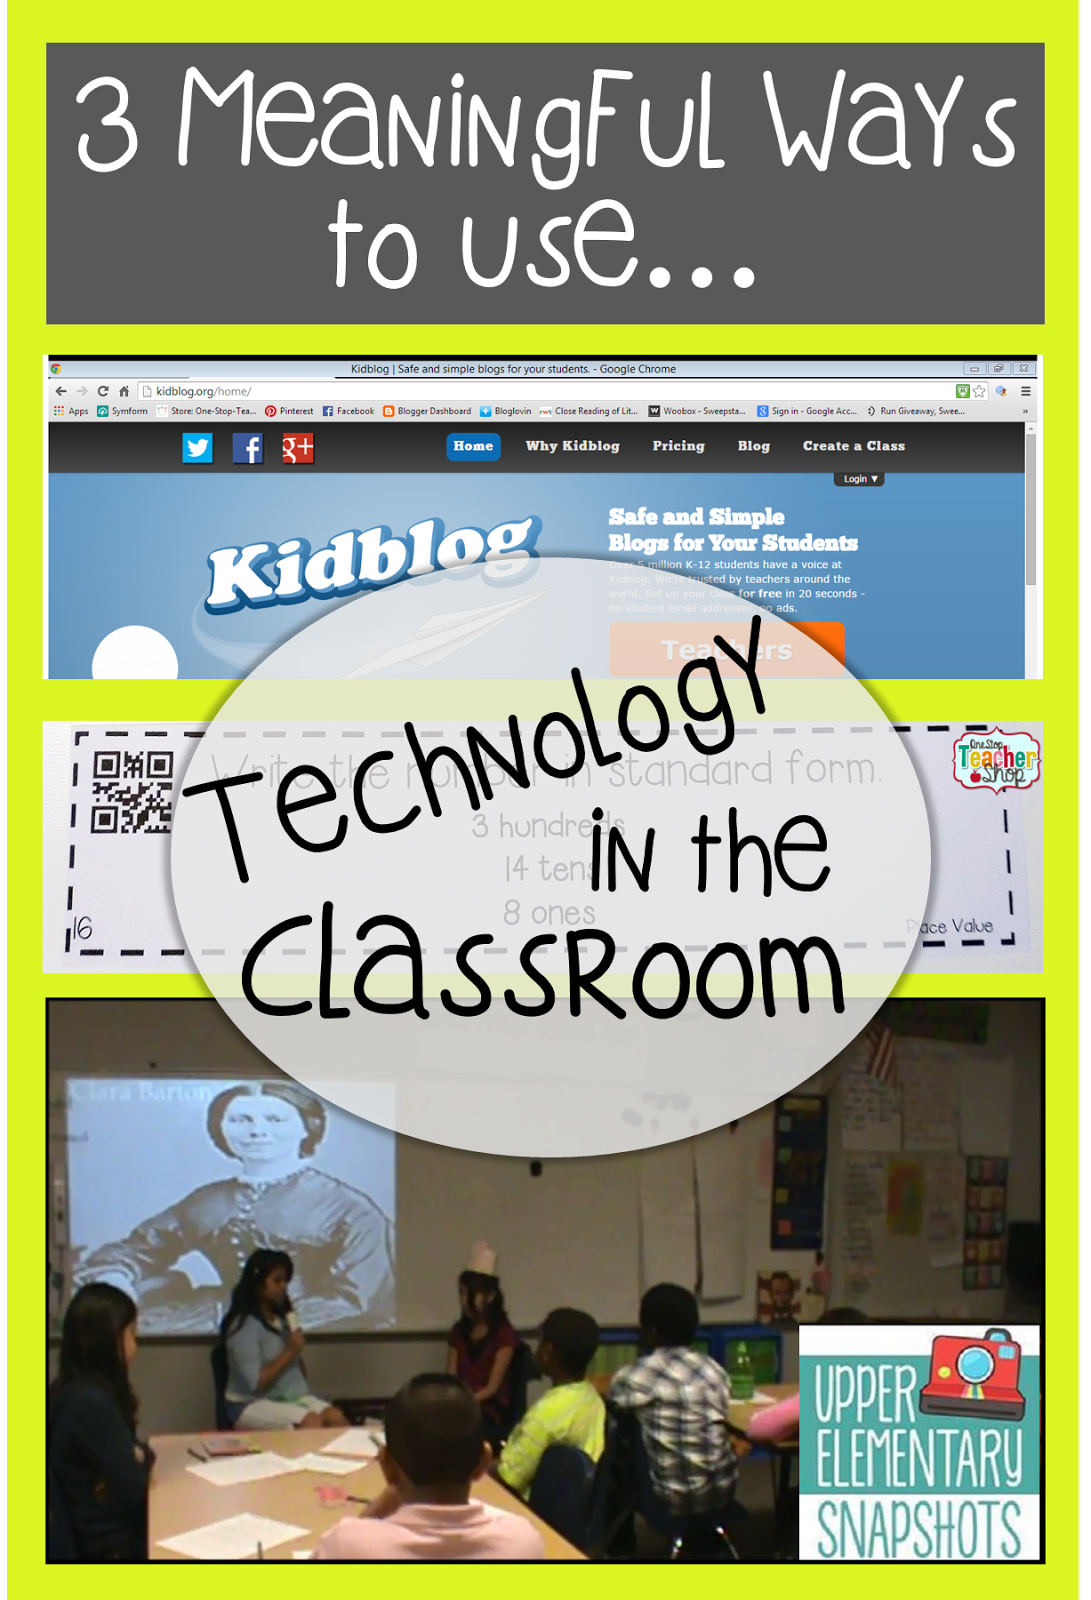 Technology In Elementary Classrooms ~ Upper elementary snapshots meaningful ways to use